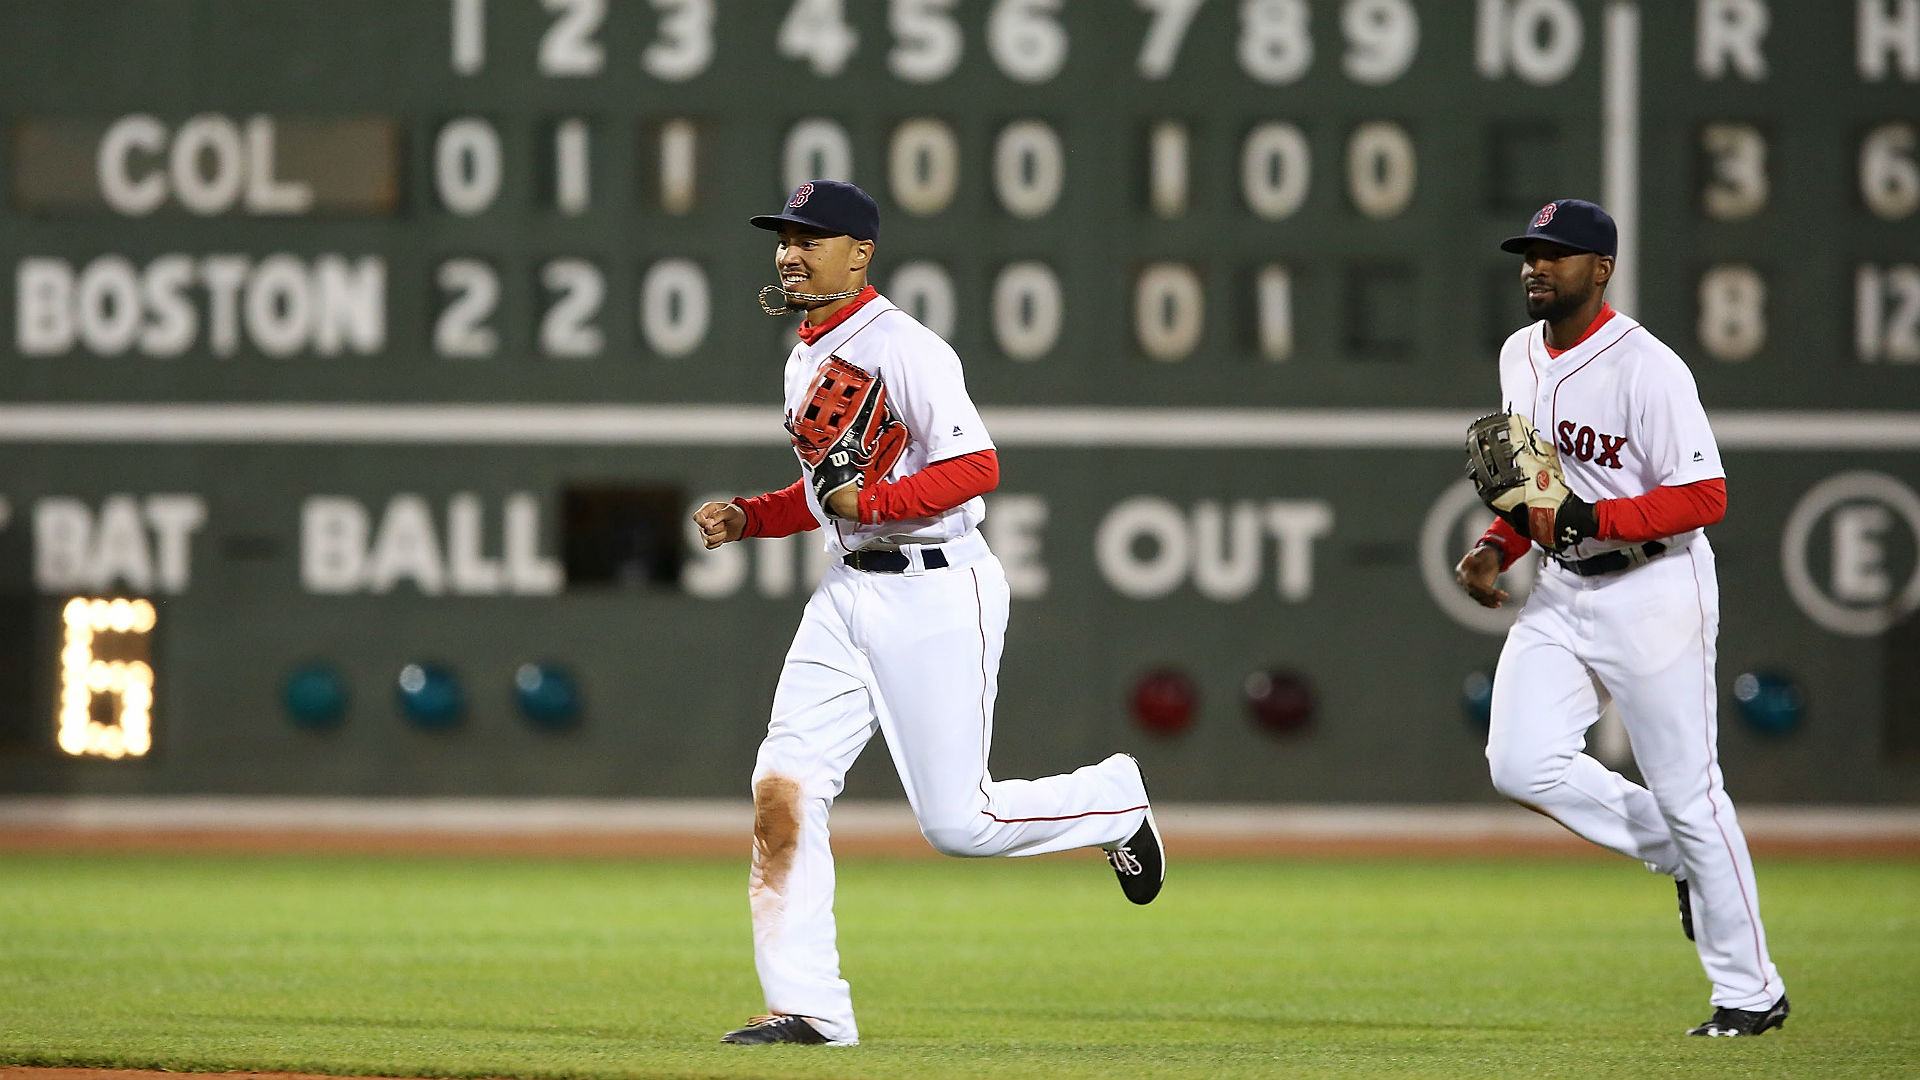 MLB announces 2018 Gold Glove Awards: Red Sox, Braves with three winners each